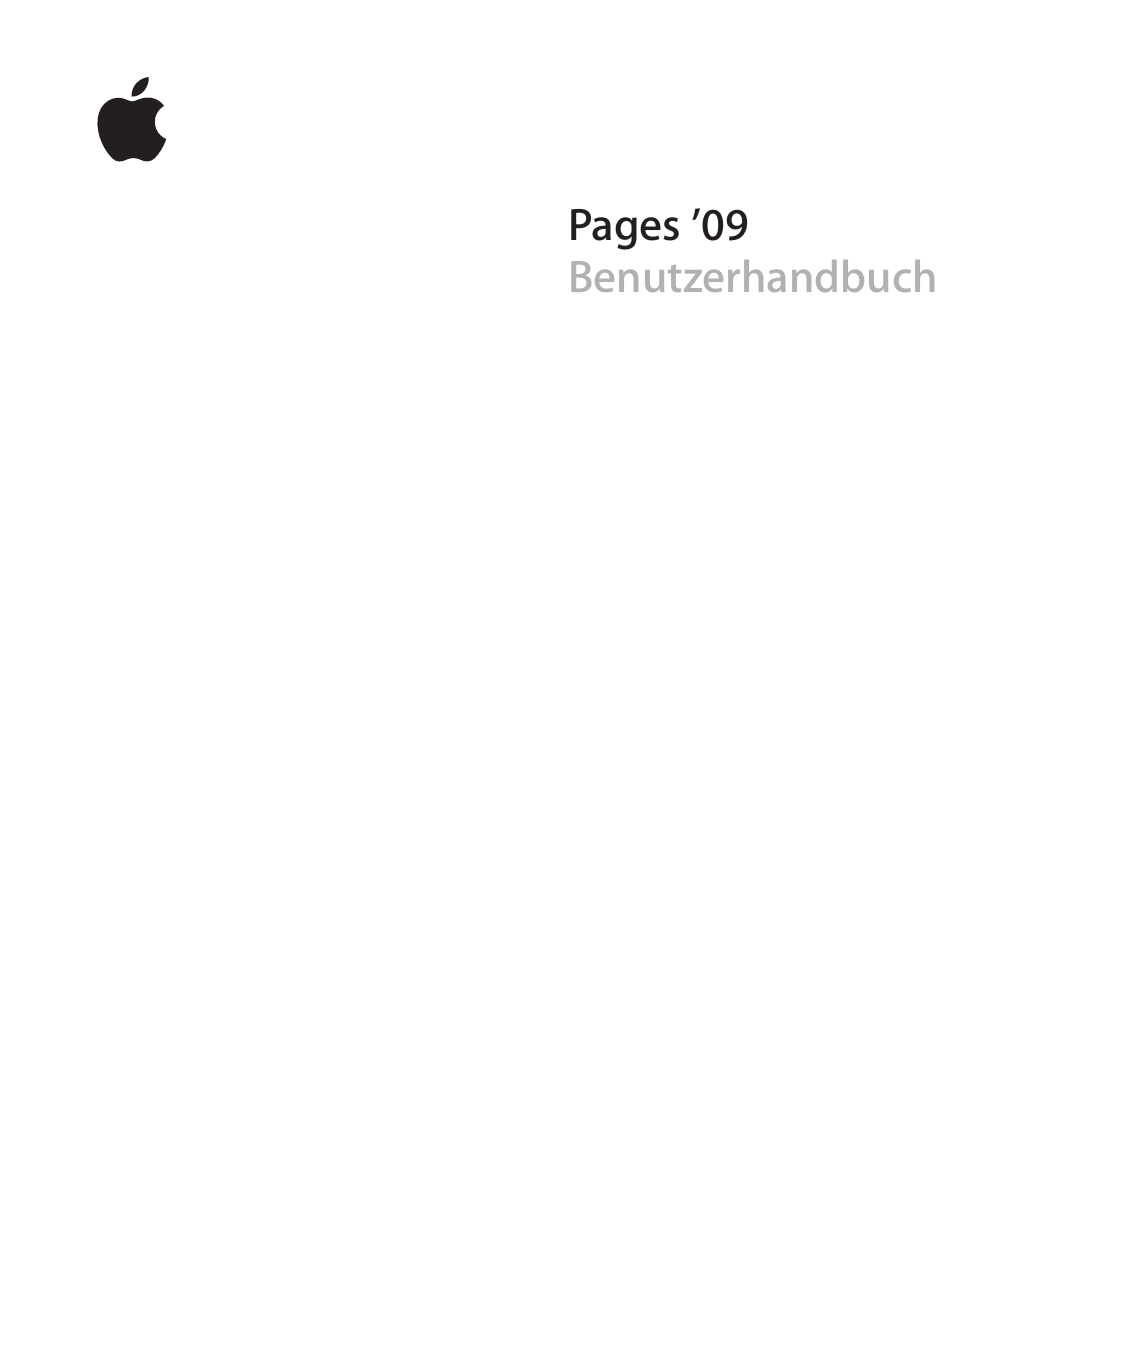 Apple IWork \\\'09 Pages \'09 Benutzerhandbuch User Manual Pages09